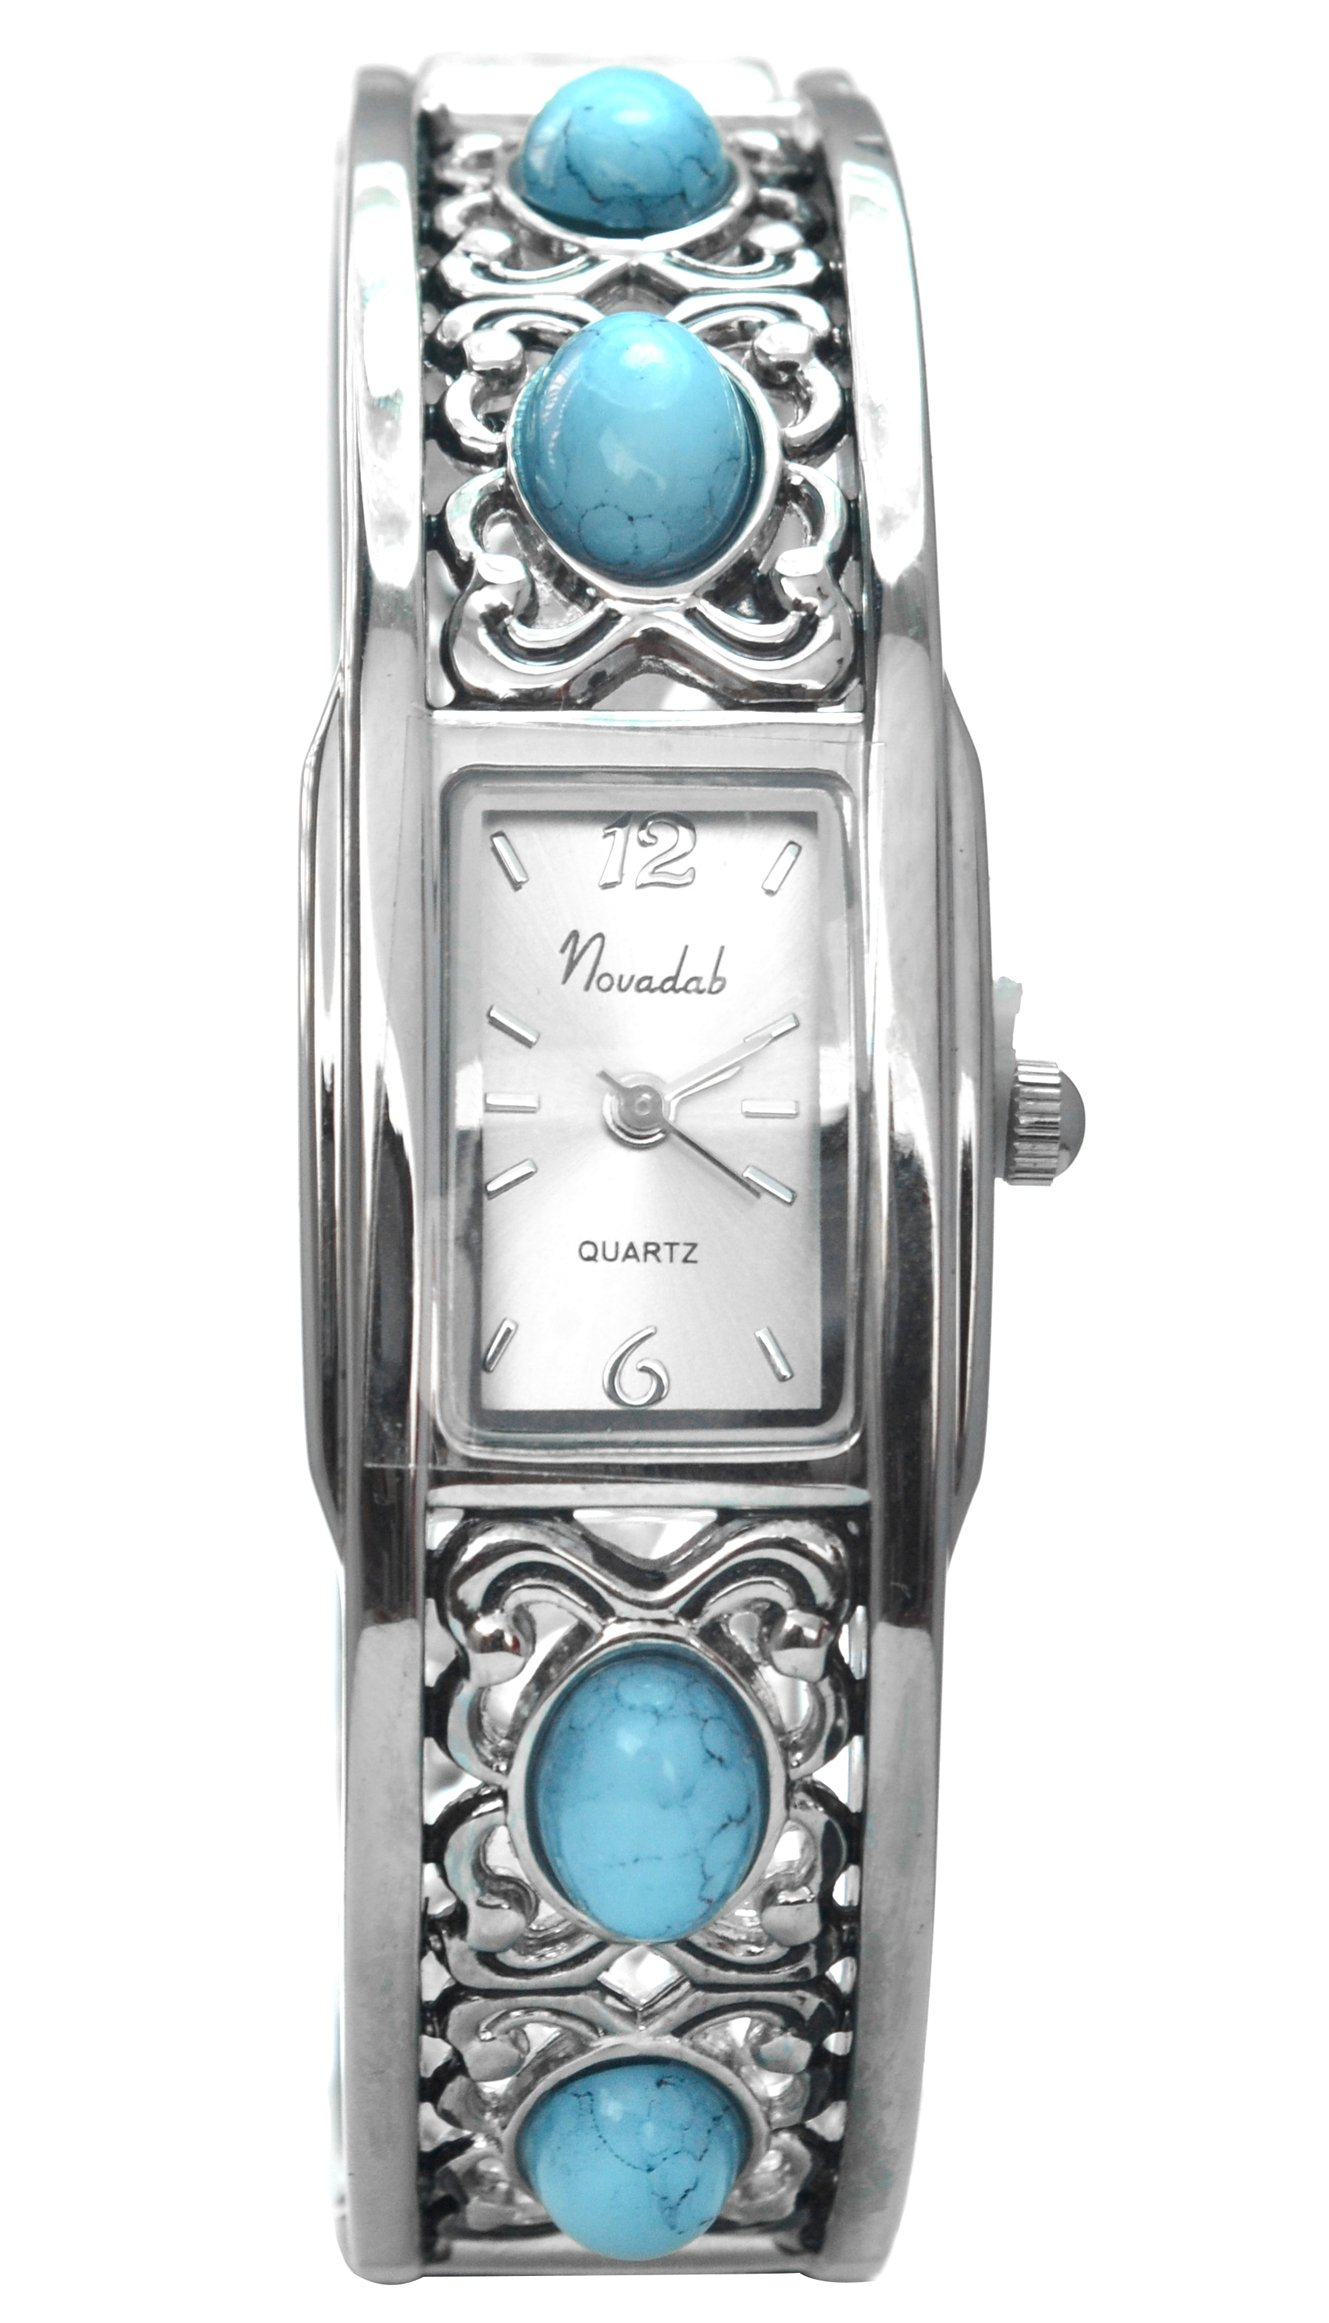 NOVADAB Baja Vintage Turquoise Beads Bangle Watch For Women